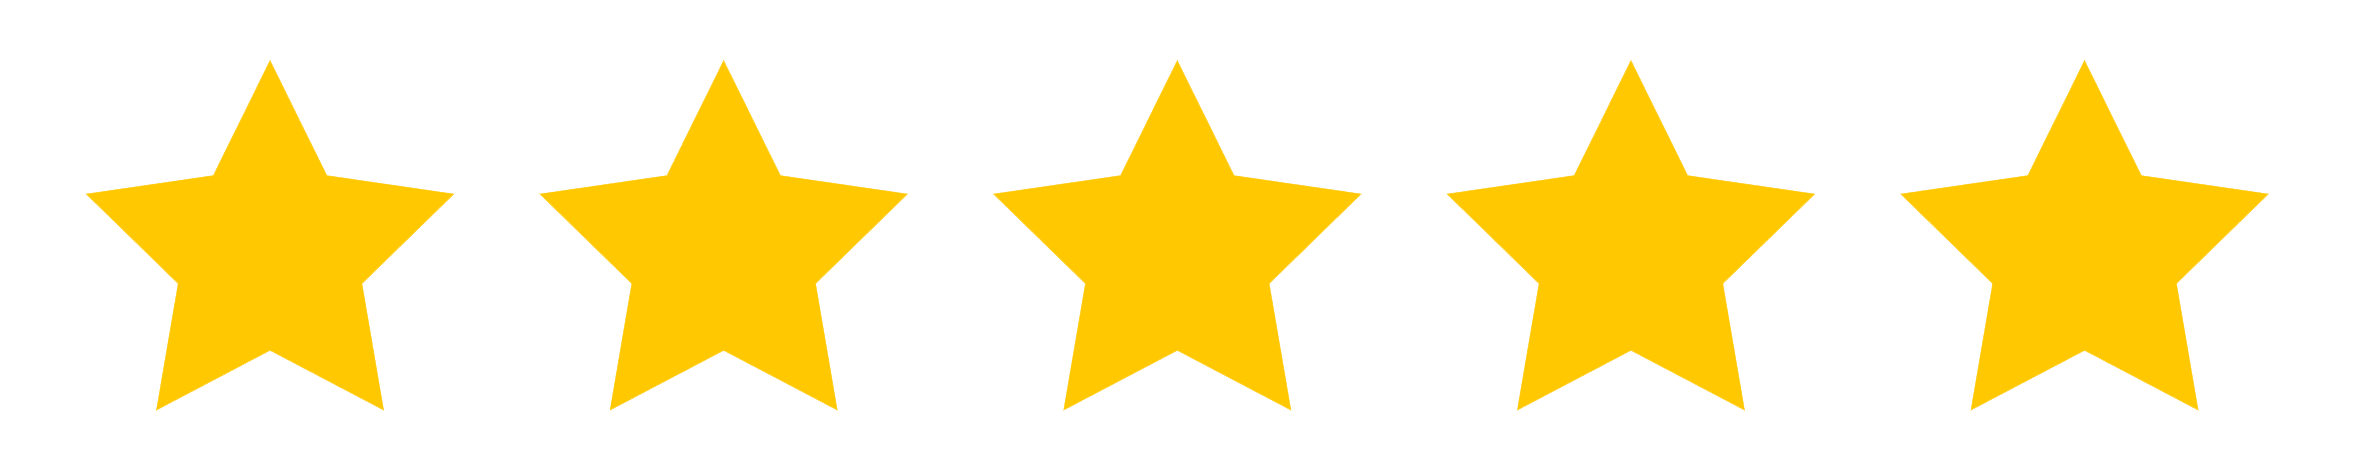 Reviews star rating from Diane C. for A-1 Self Storage in Oceanside, California